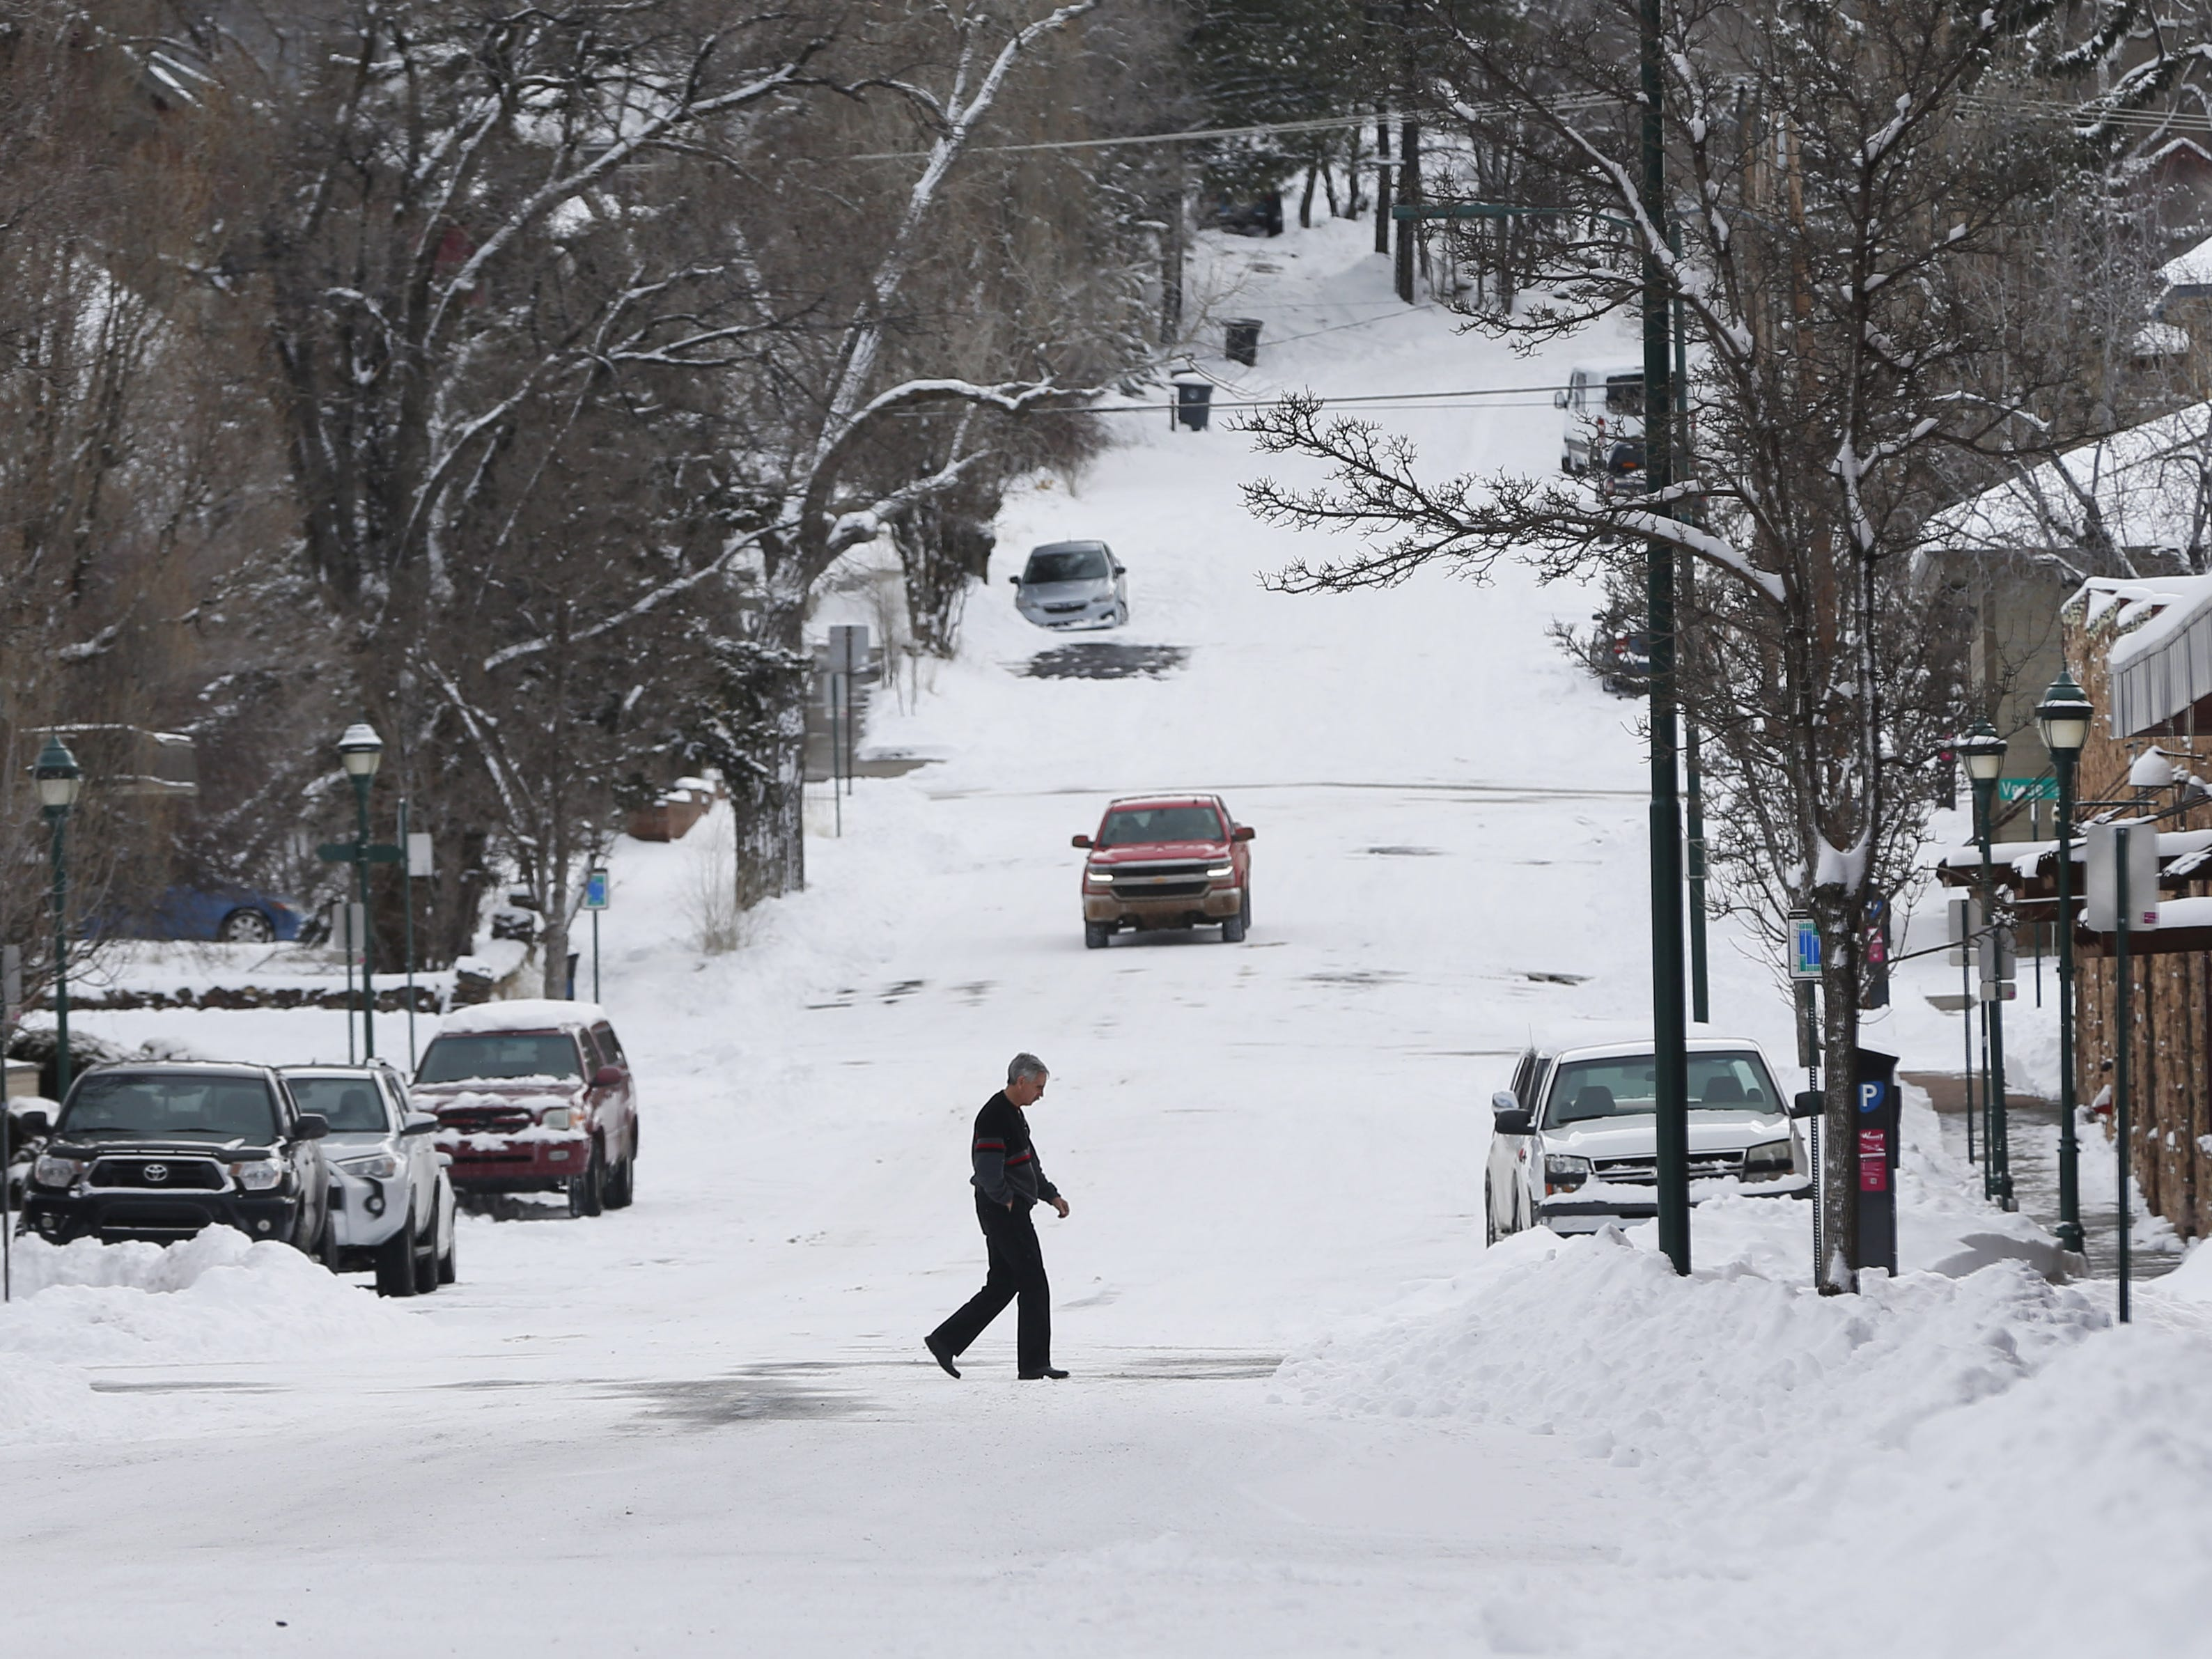 A pedestrian walks in the snow in downtown Flagstaff, Ariz. on Feb. 18, 2019.